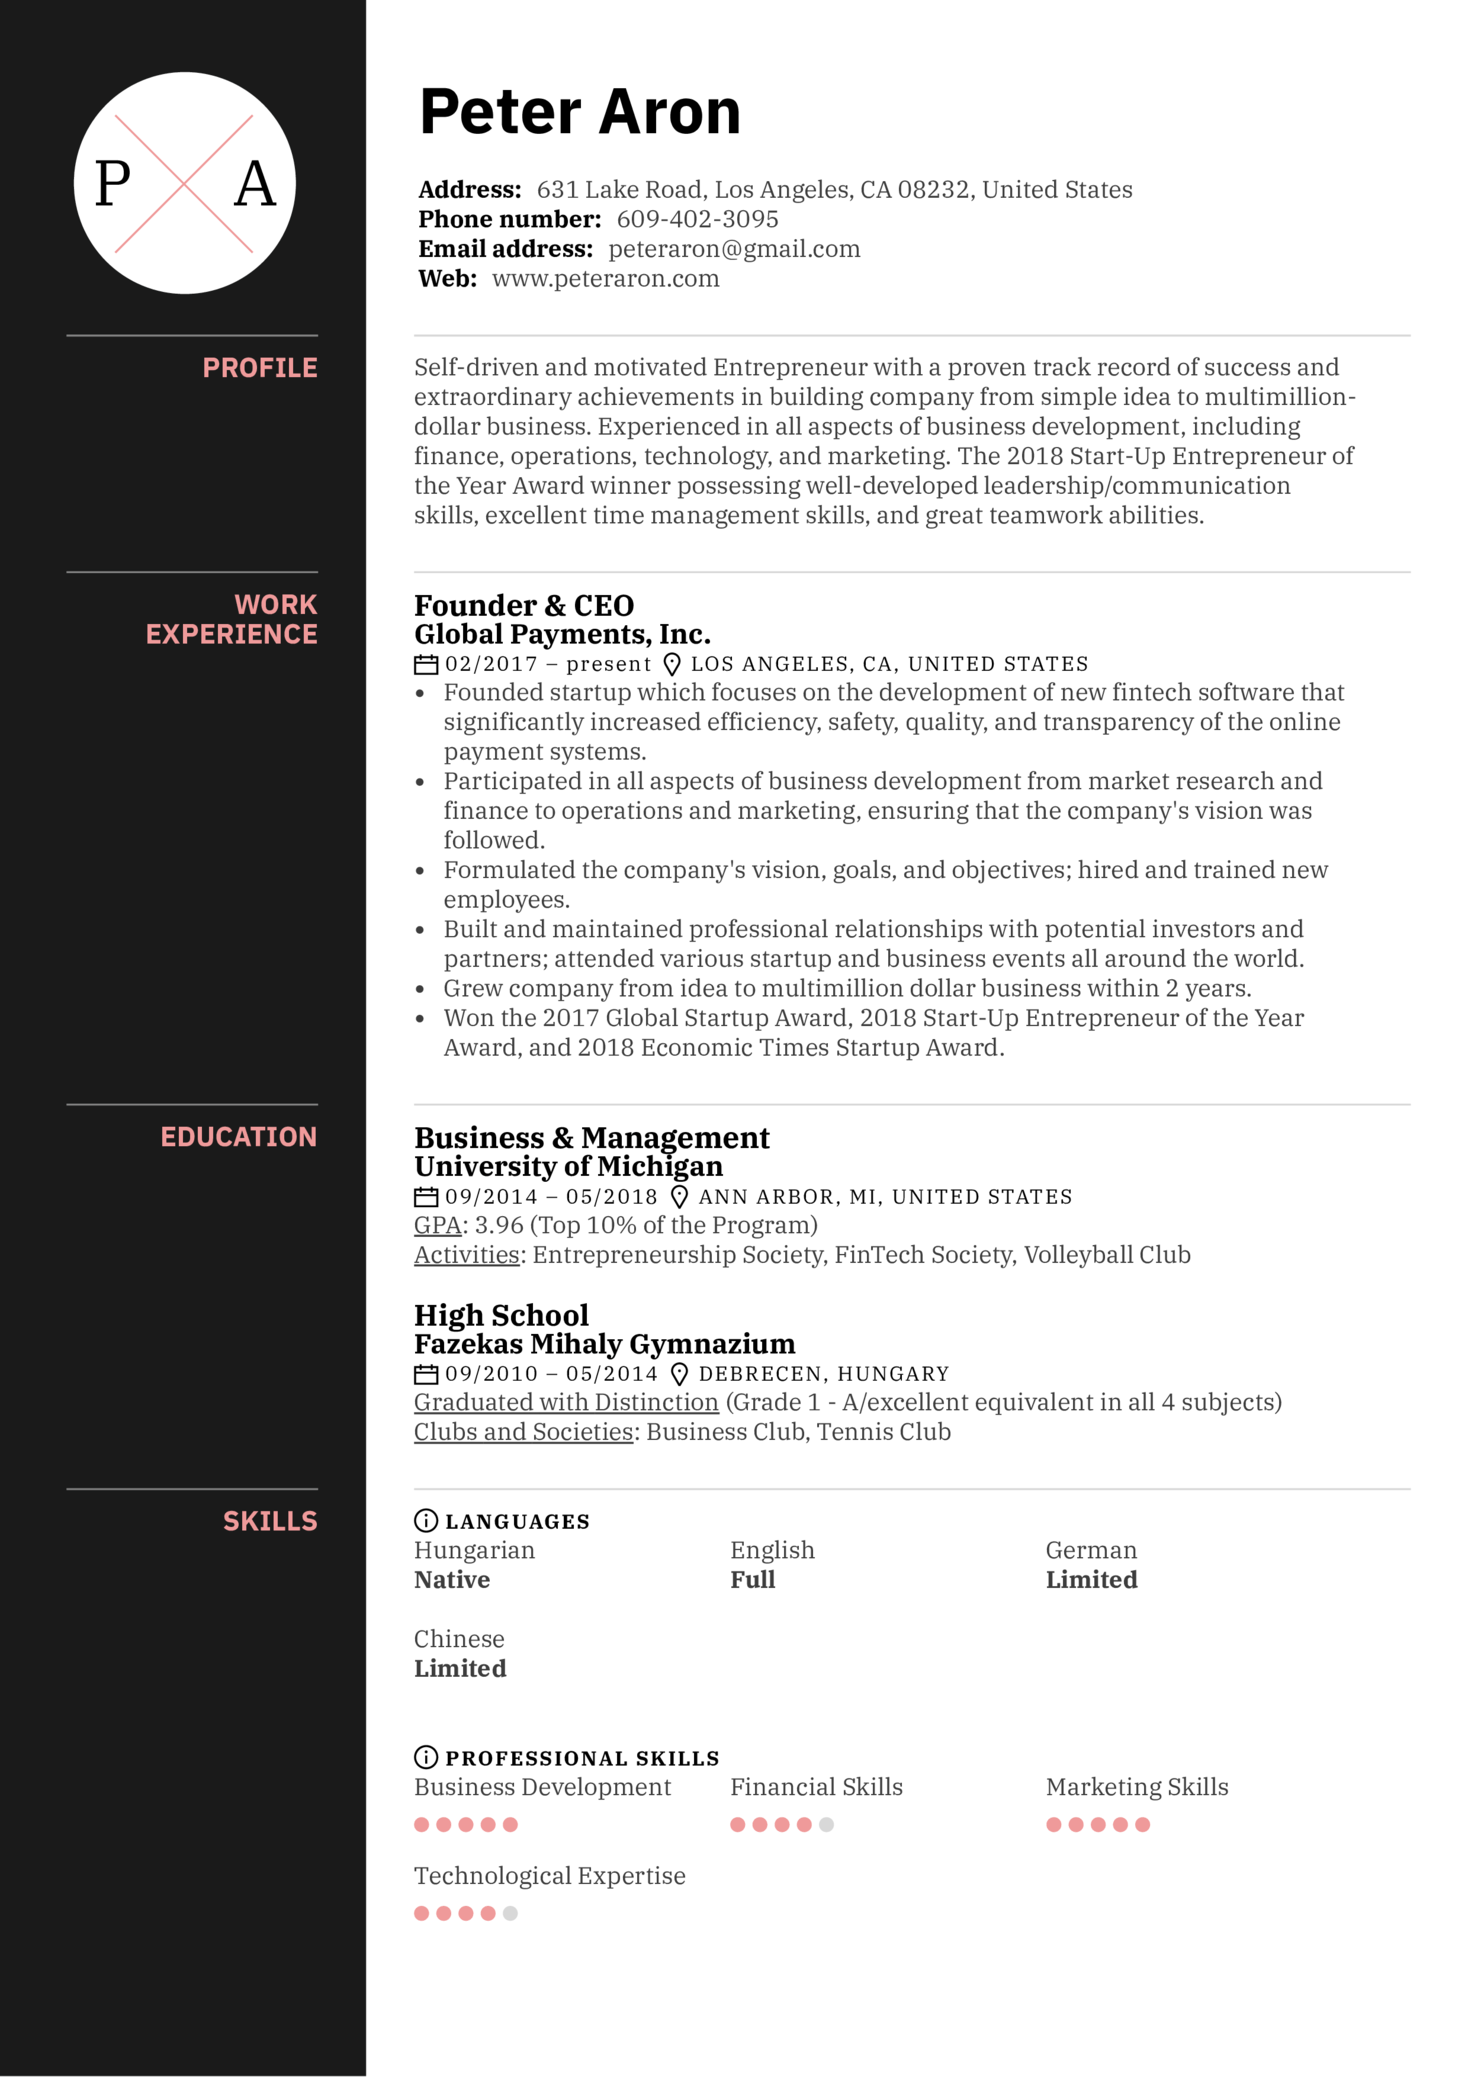 Founder Resume Example (Parte 1)